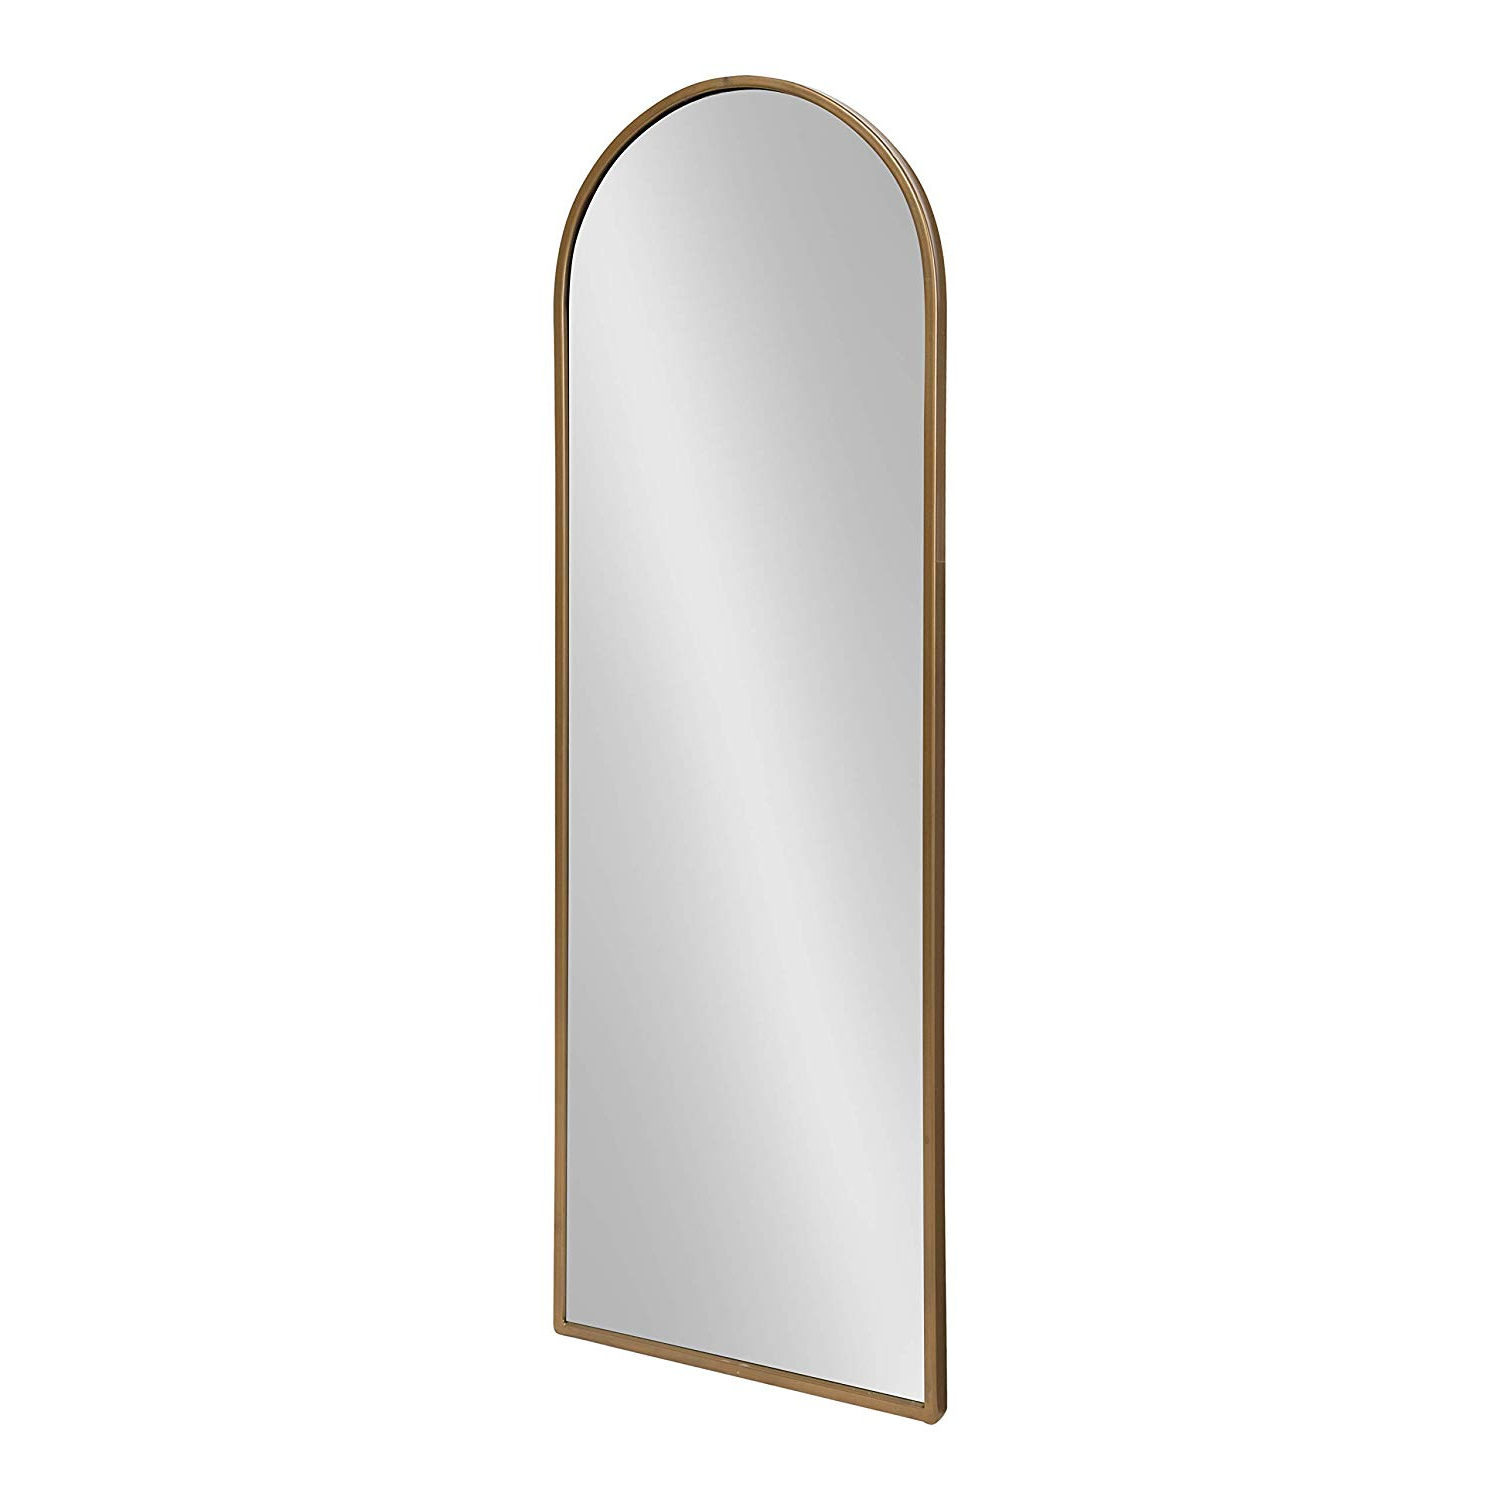 Preferred Framed Full Length Wall Mirrors Within Kate And Laurel Valenti Metal Frame Arch Full Length Wall Mirror, Gold, 16x (View 5 of 20)